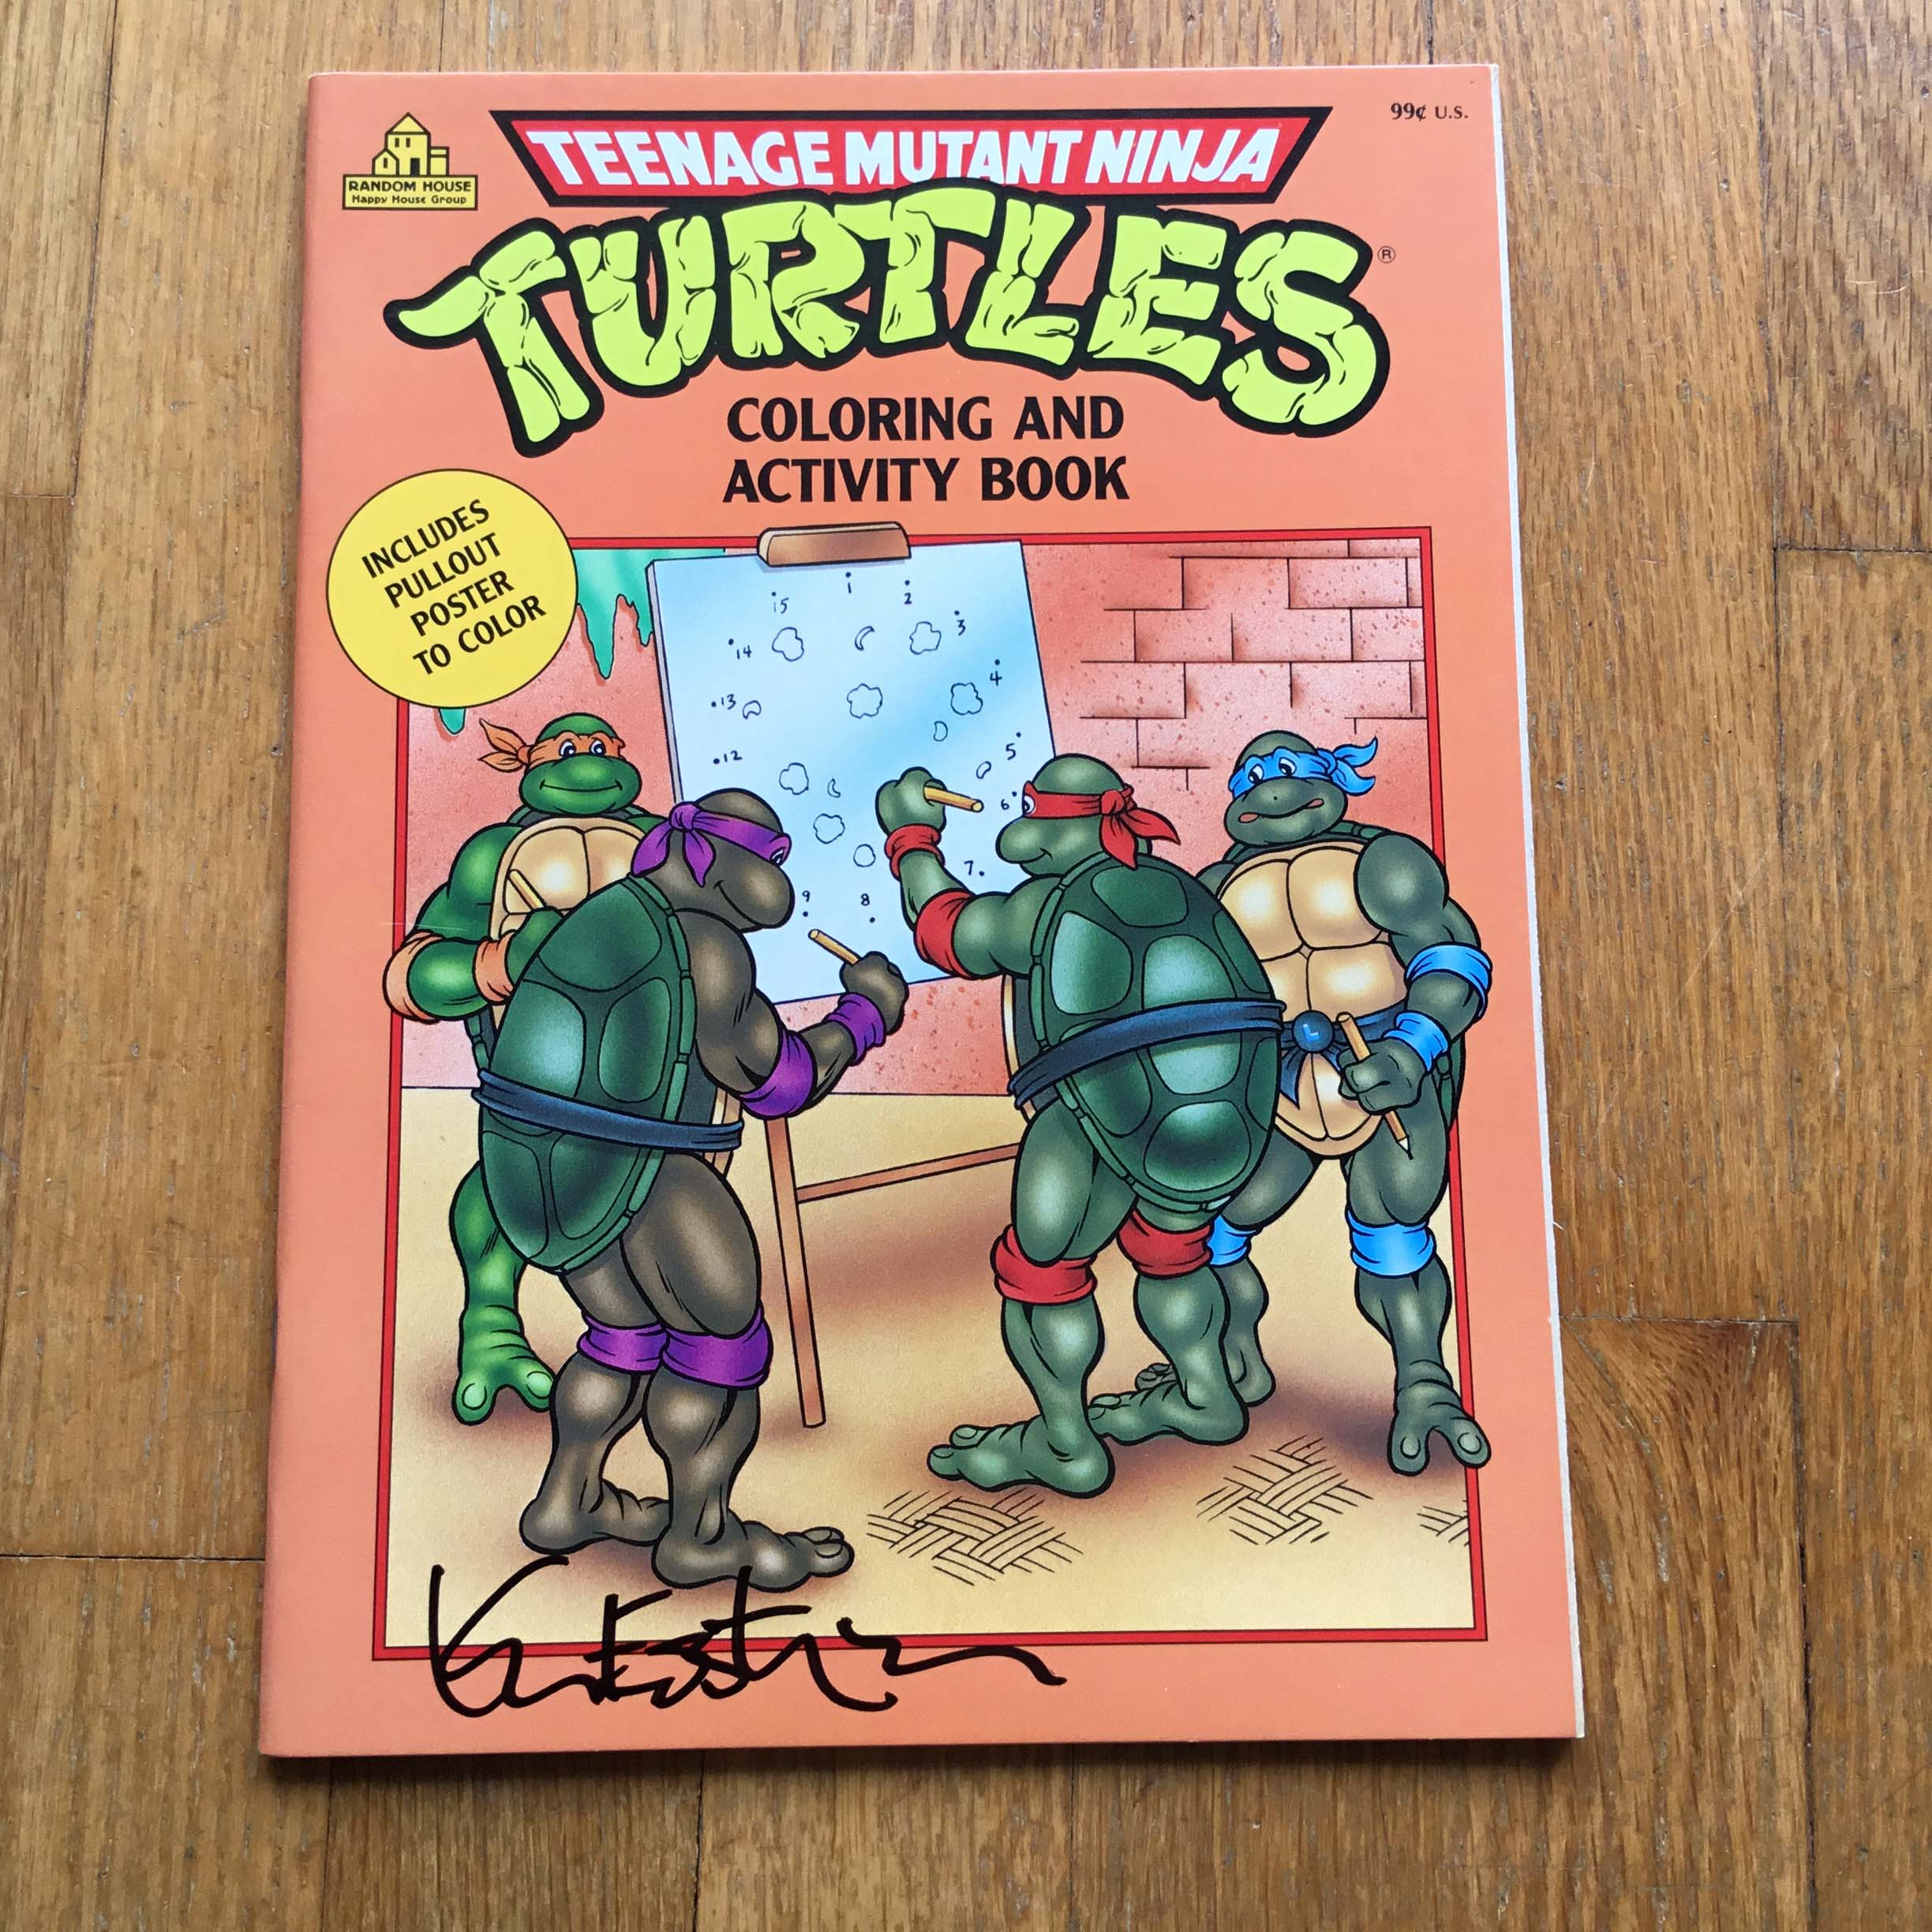 1990 tmnt coloring activity book orange signed eastman - Tmnt Coloring Book